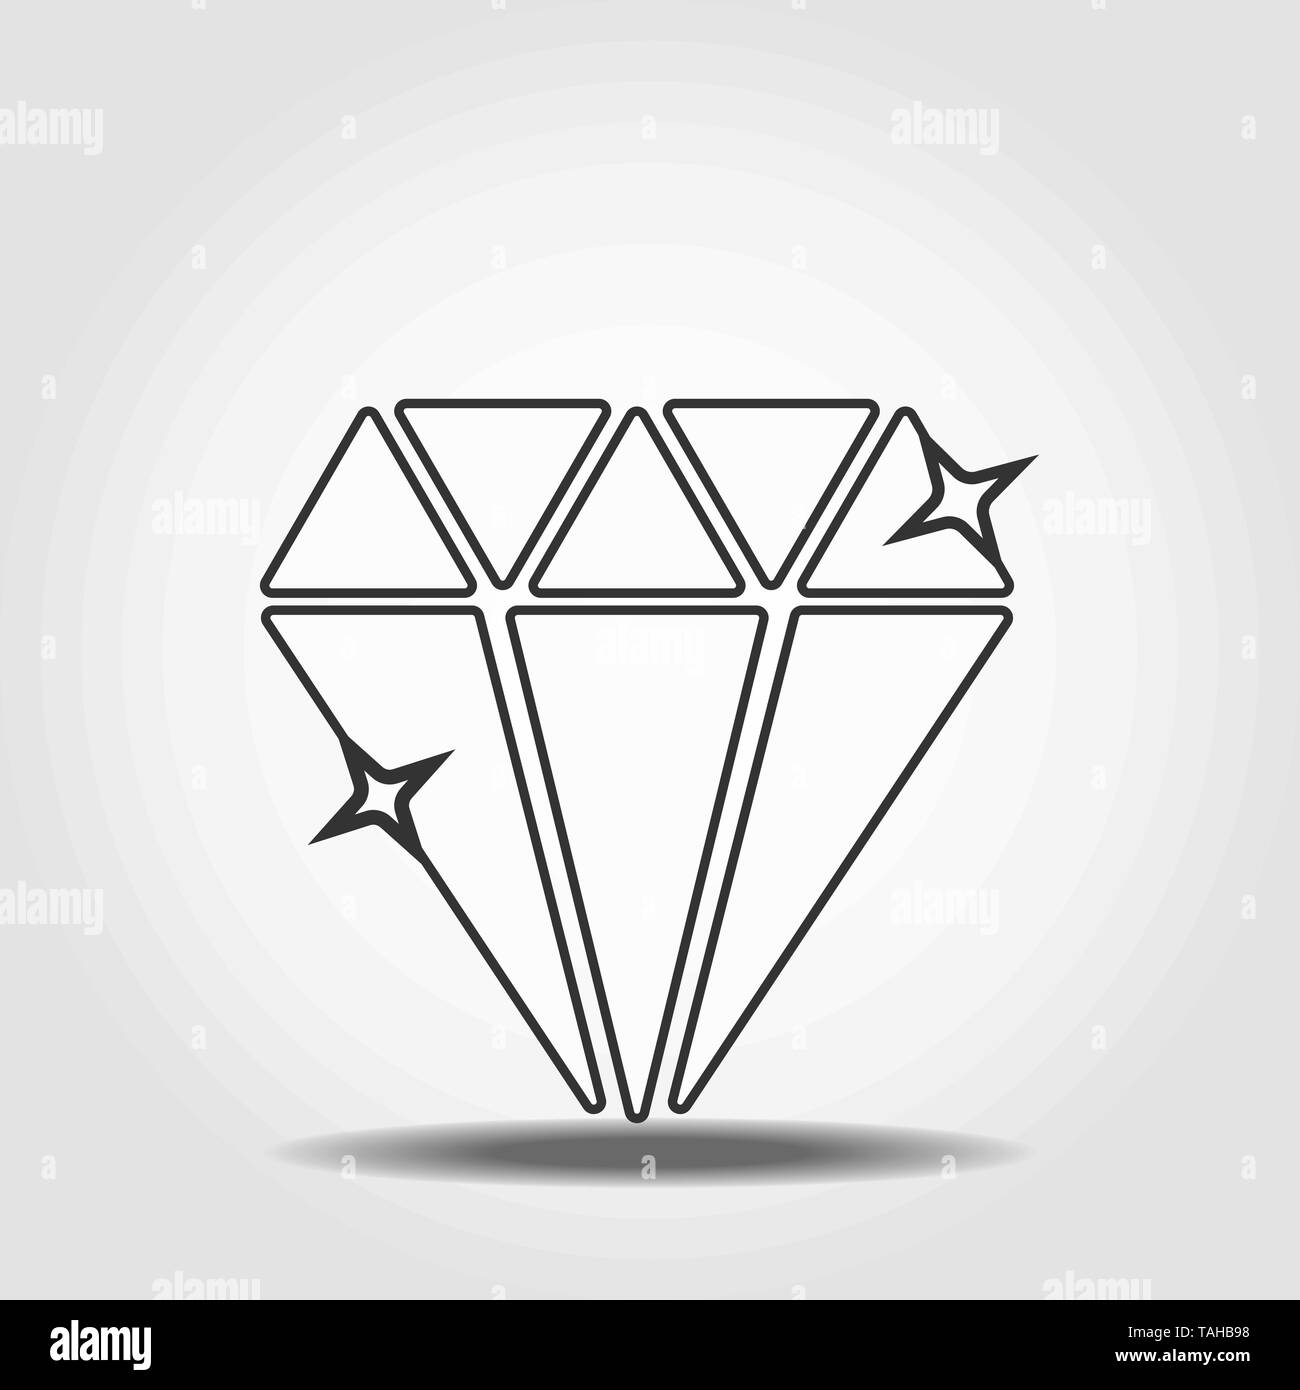 Diamond linear icon. Thin line illustration. Shiny brilliant gem contour symbol. Vector isolated outline drawing eps10 - Stock Image